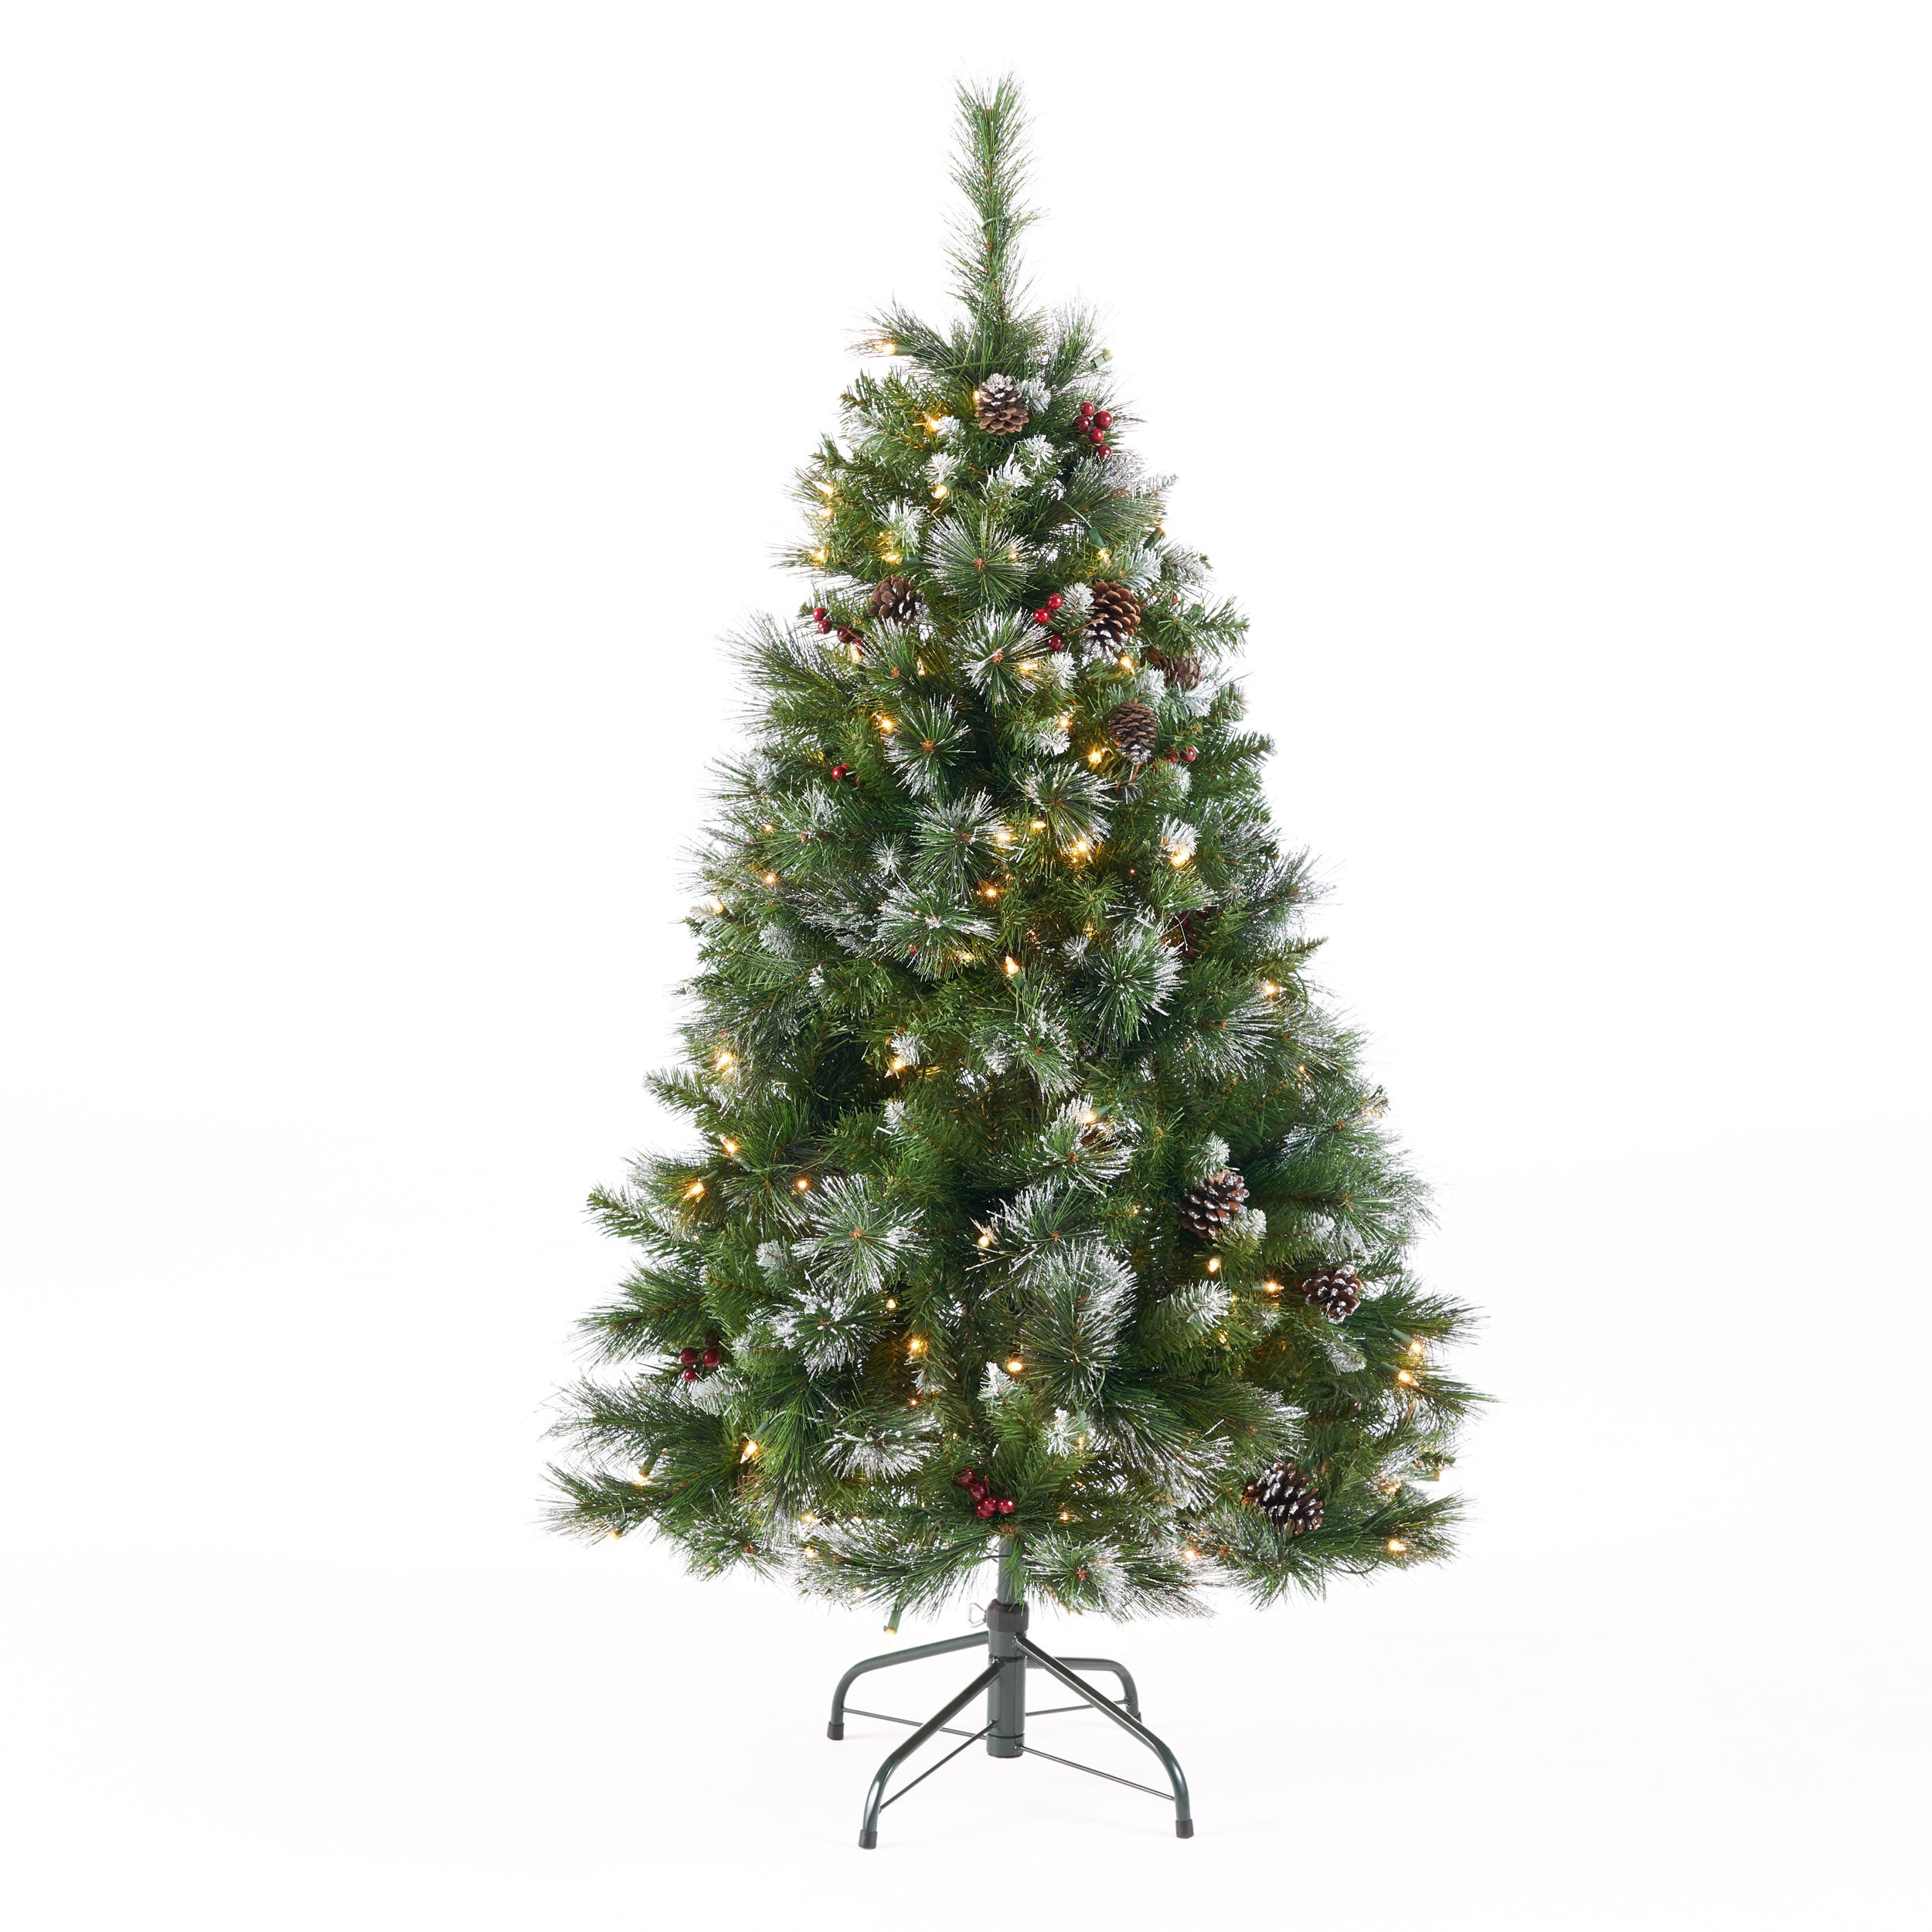 45 foot Mixed Spruce Hinged Artificial Christmas Tree with Glitter Branches Red Berries and Pinecones Clear Lights